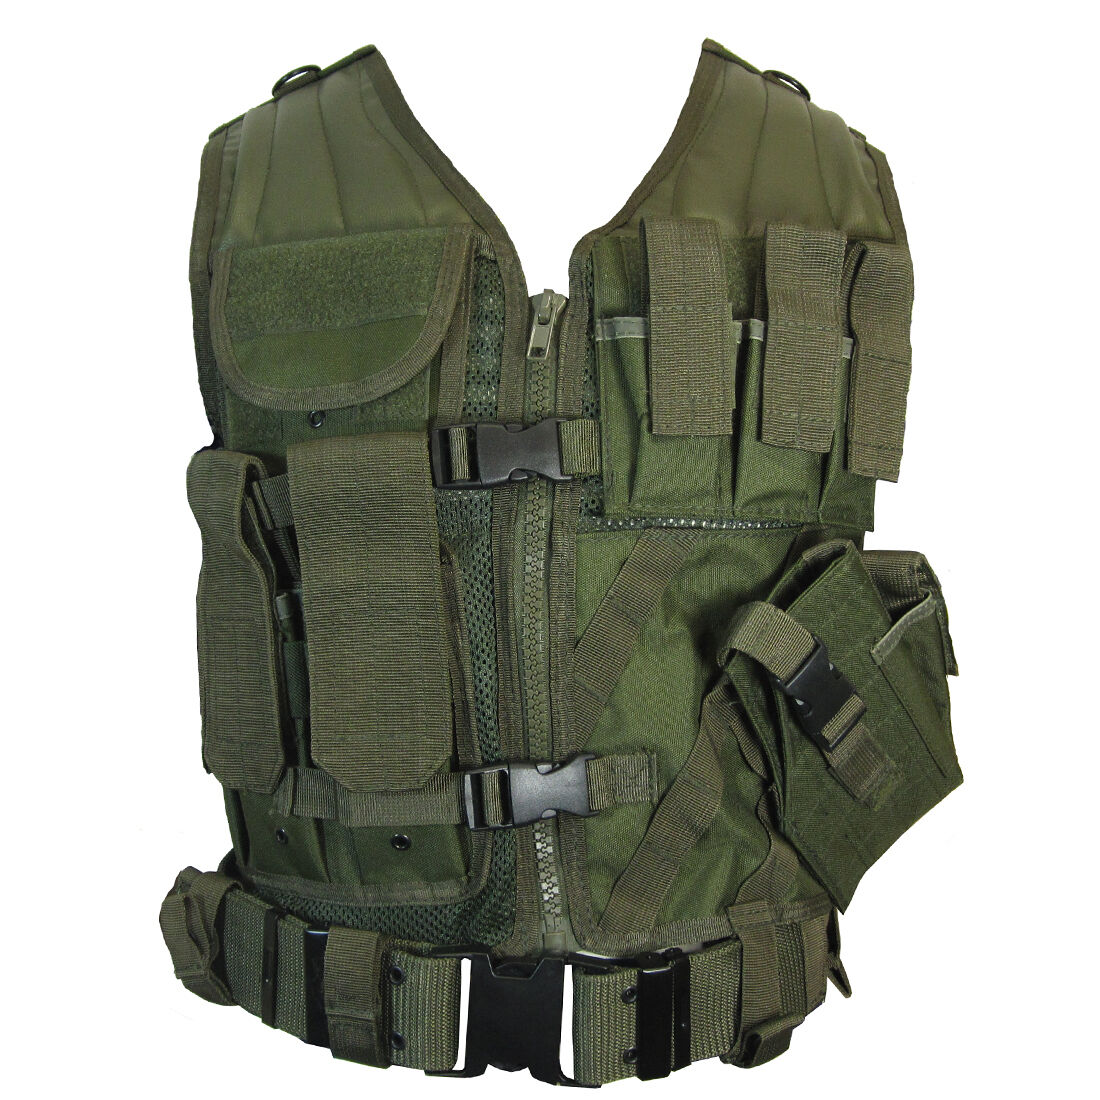 Olive verde USMC Tactical Vest Combat Assault Airsoft Army Molle Attachuominit Rig